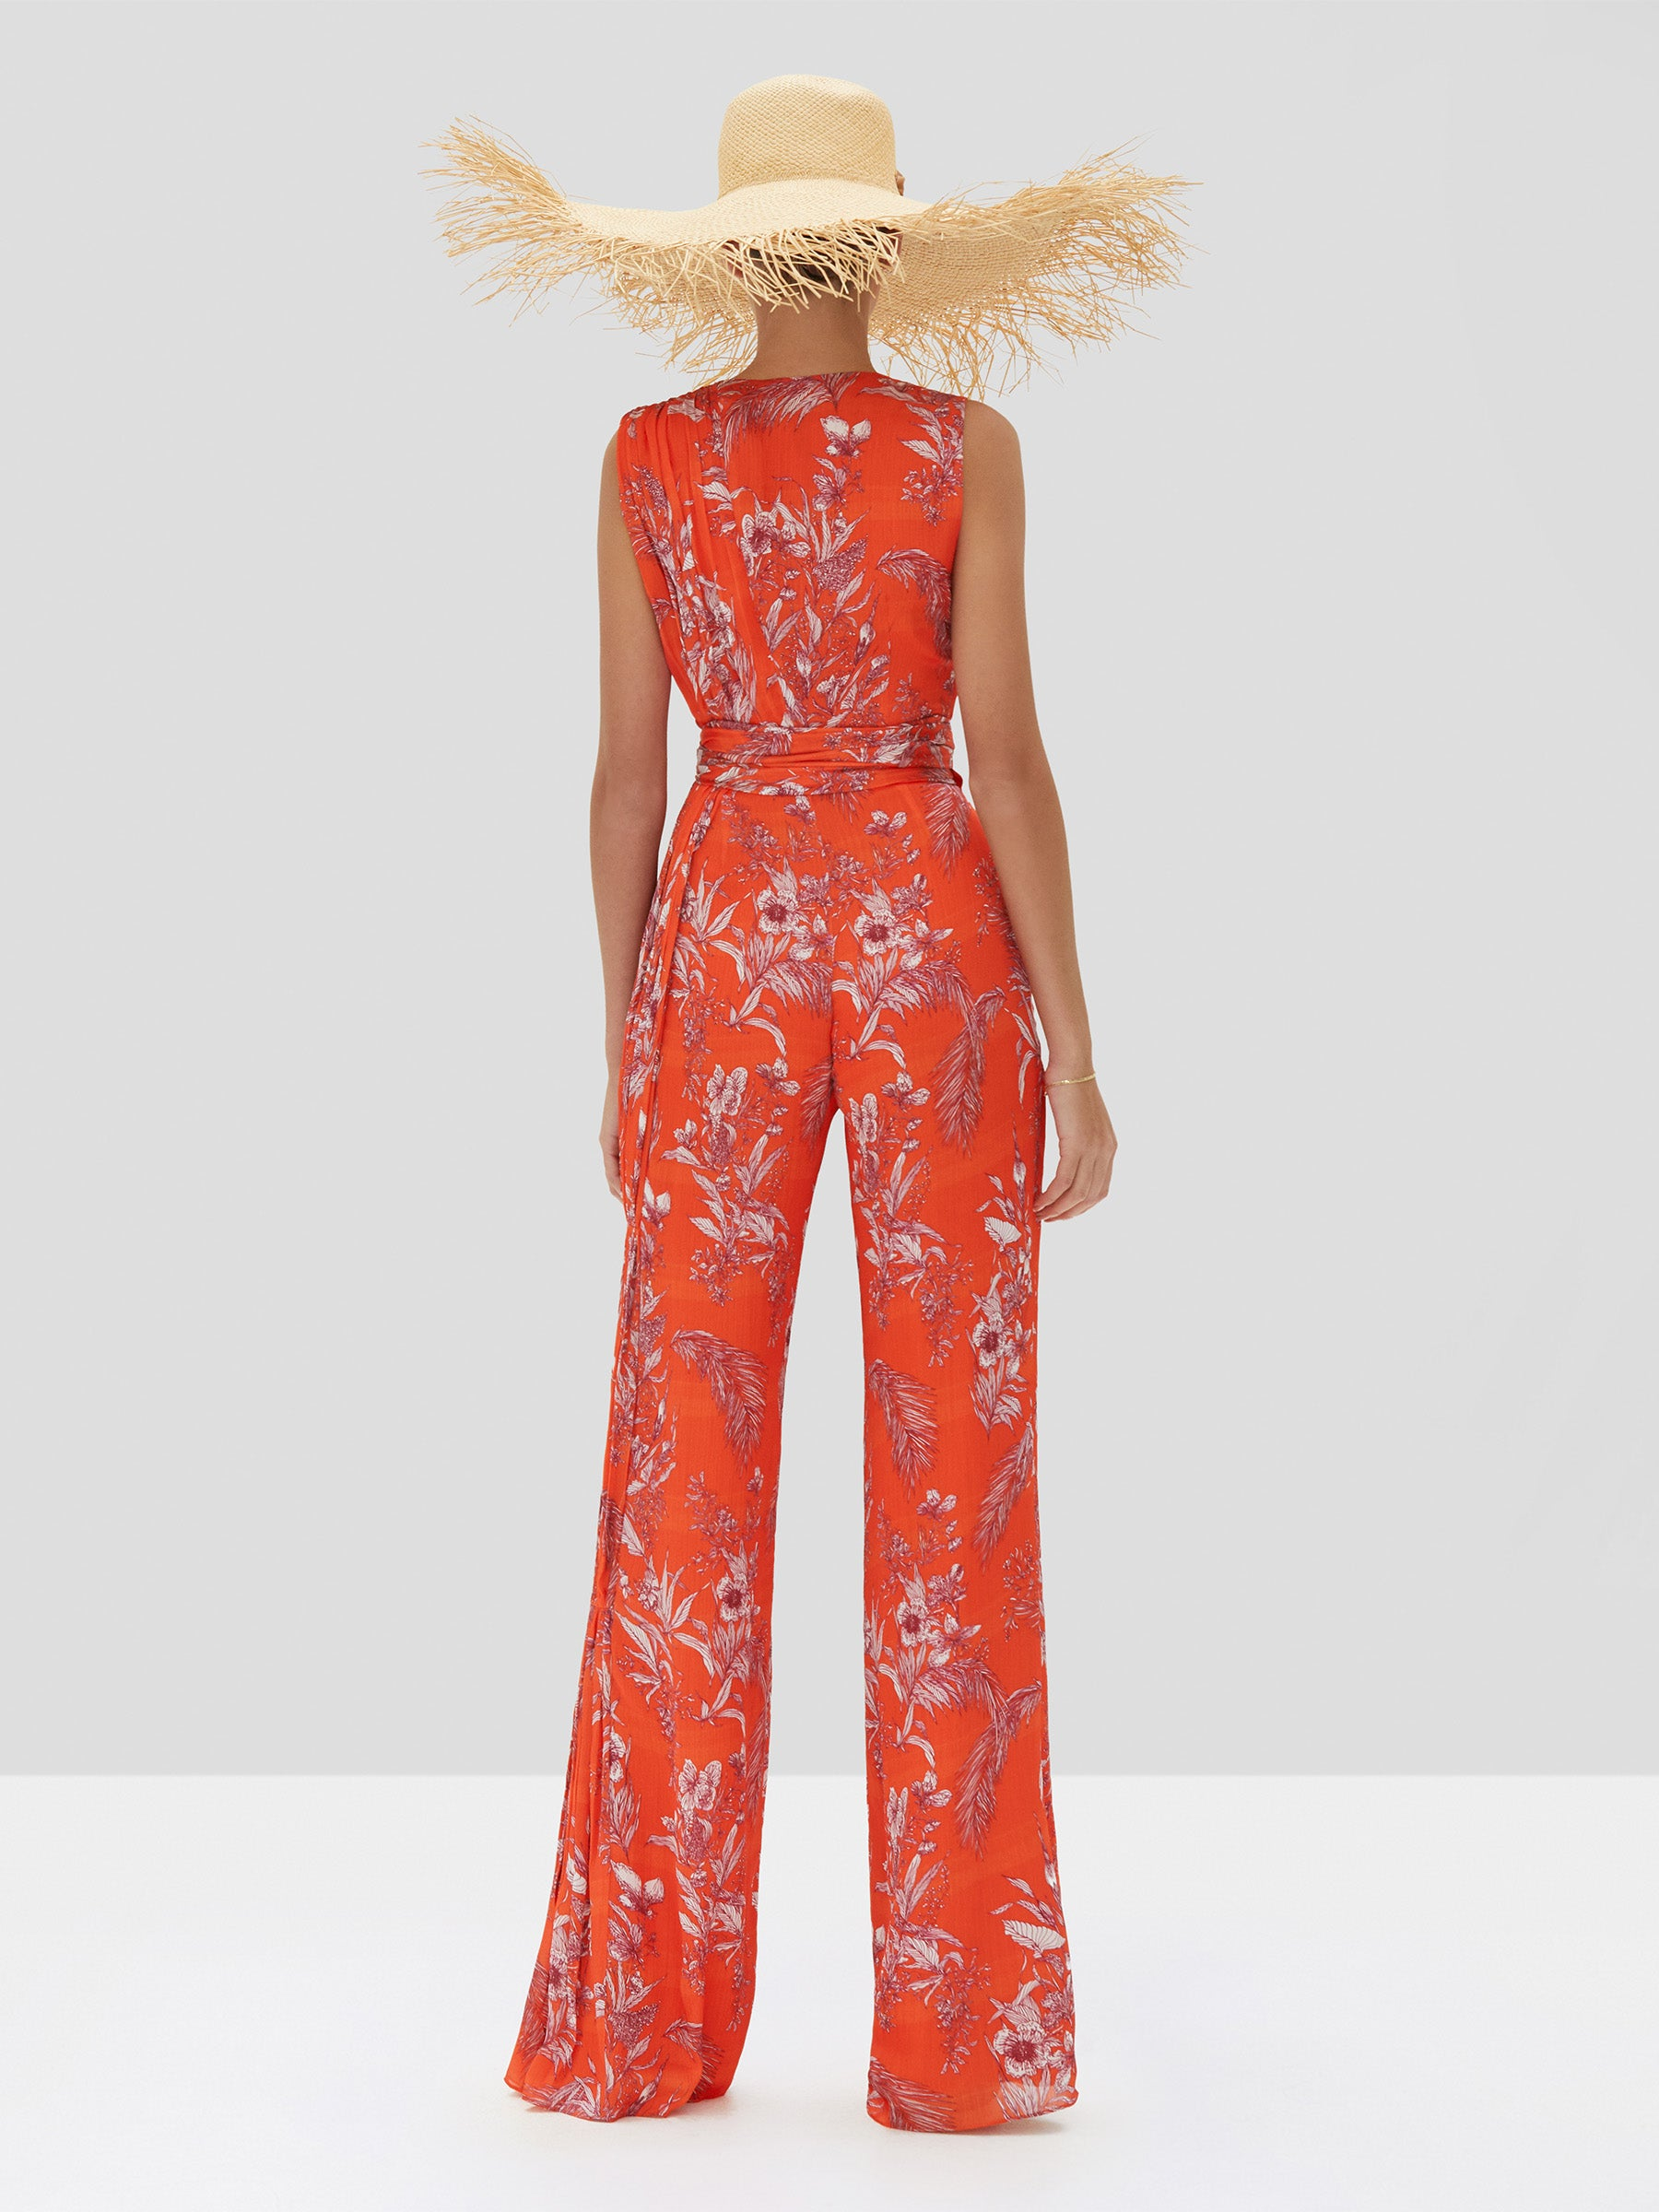 Alexis Kamiko Jumpsuit in Mandarin Palm from the Spring Summer 2020 Collection - Rear View